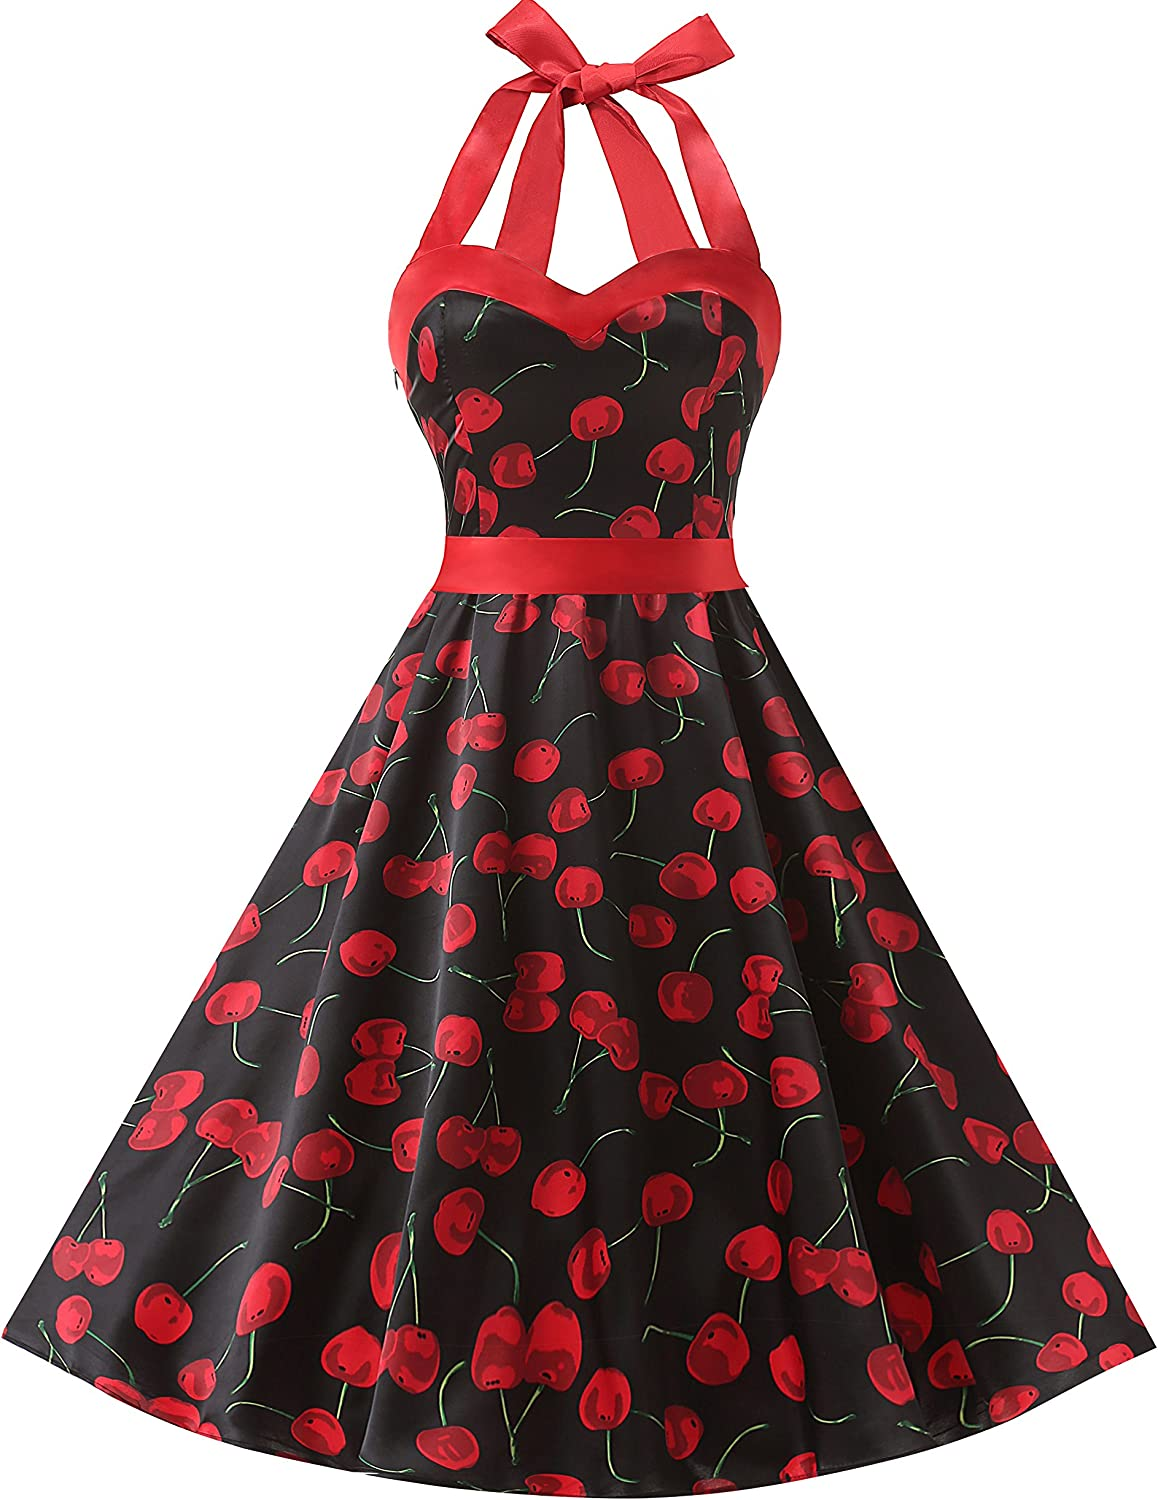 TALLA M. Dresstells® Halter 50s Rockabilly Polka Dots Audrey Dress Retro Cocktail Dress Cherry Black M